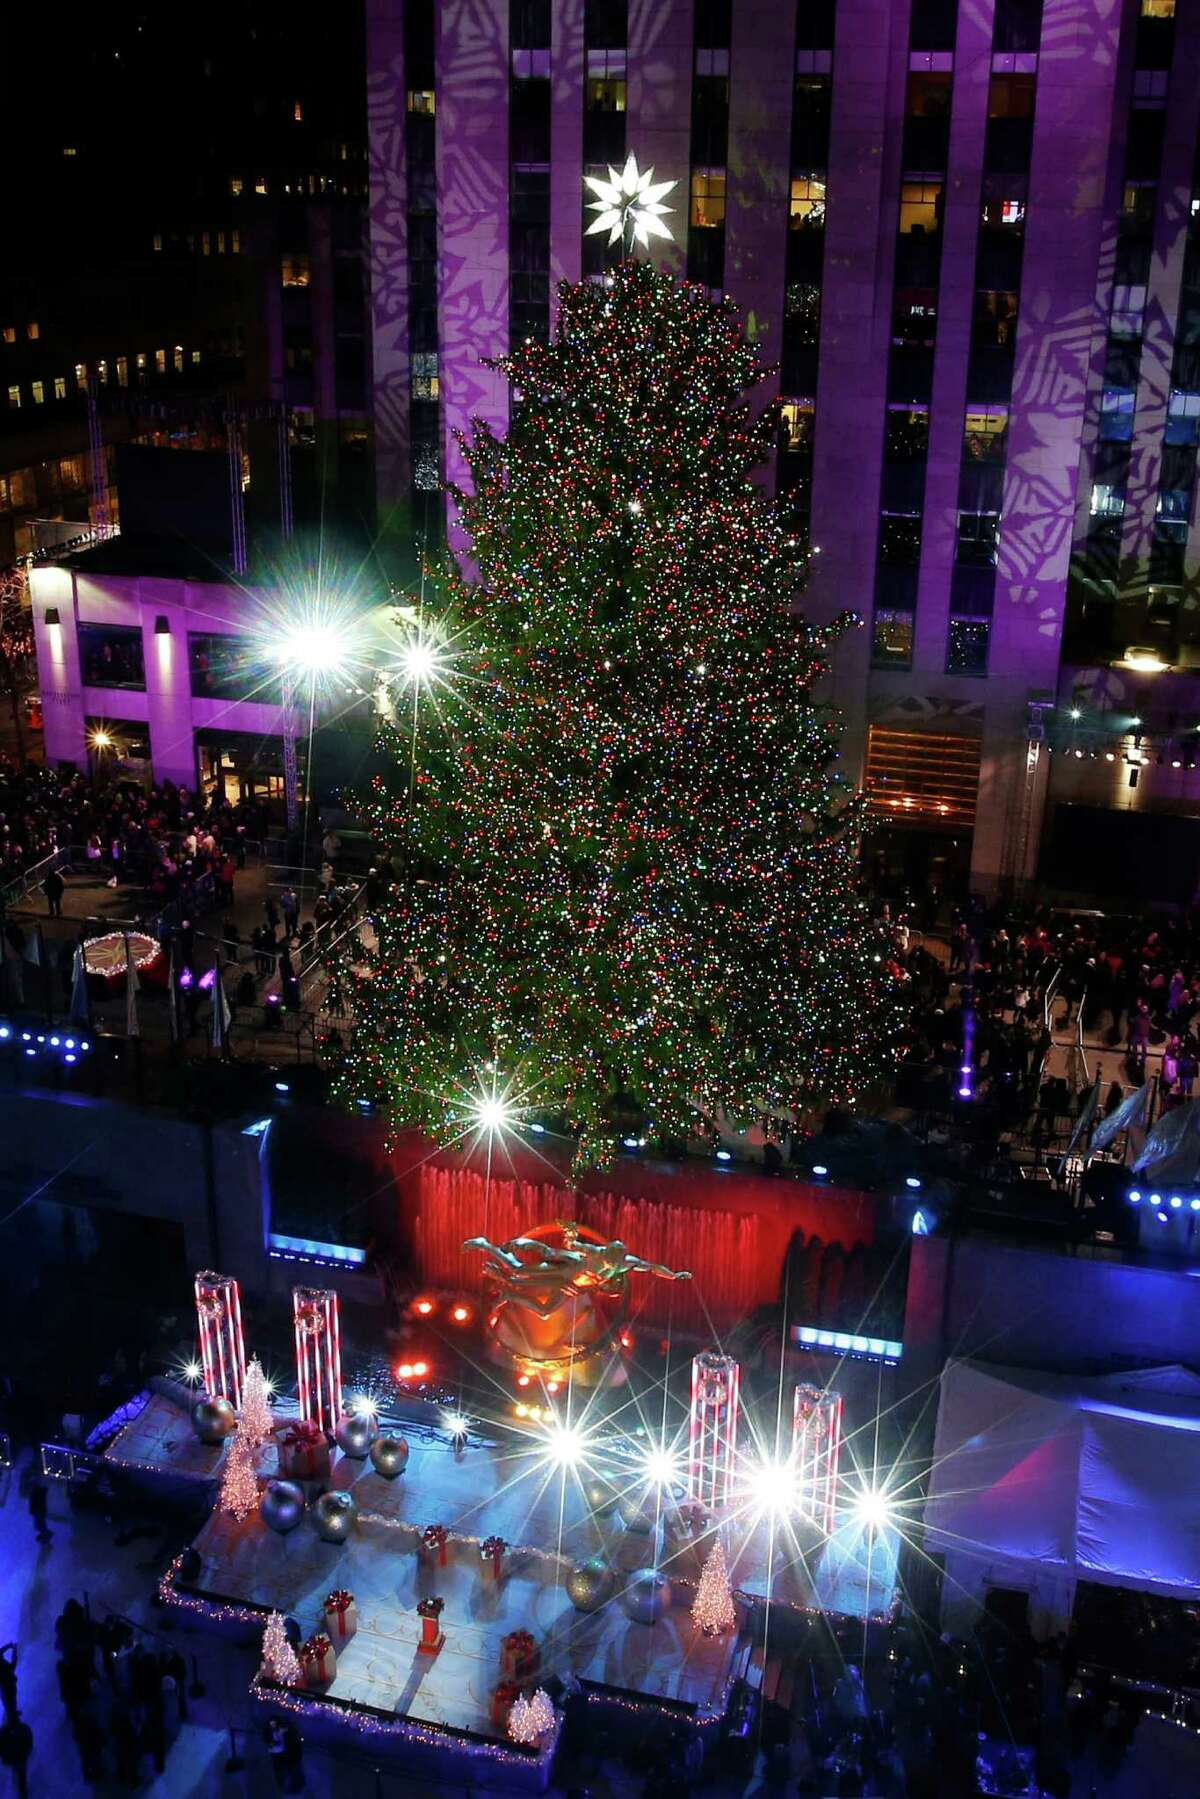 The Rockefeller Center Christmas tree is lit following a ceremony in New York on Wednesday, Dec. 3, 2014. Weighing approximately 13 tons, the 85-foot tall, 90-year-old Norway Spruce is adorned with 45,000 energy efficient LED lights. (AP Photo/Jason DeCrow) ORG XMIT: NYJD112